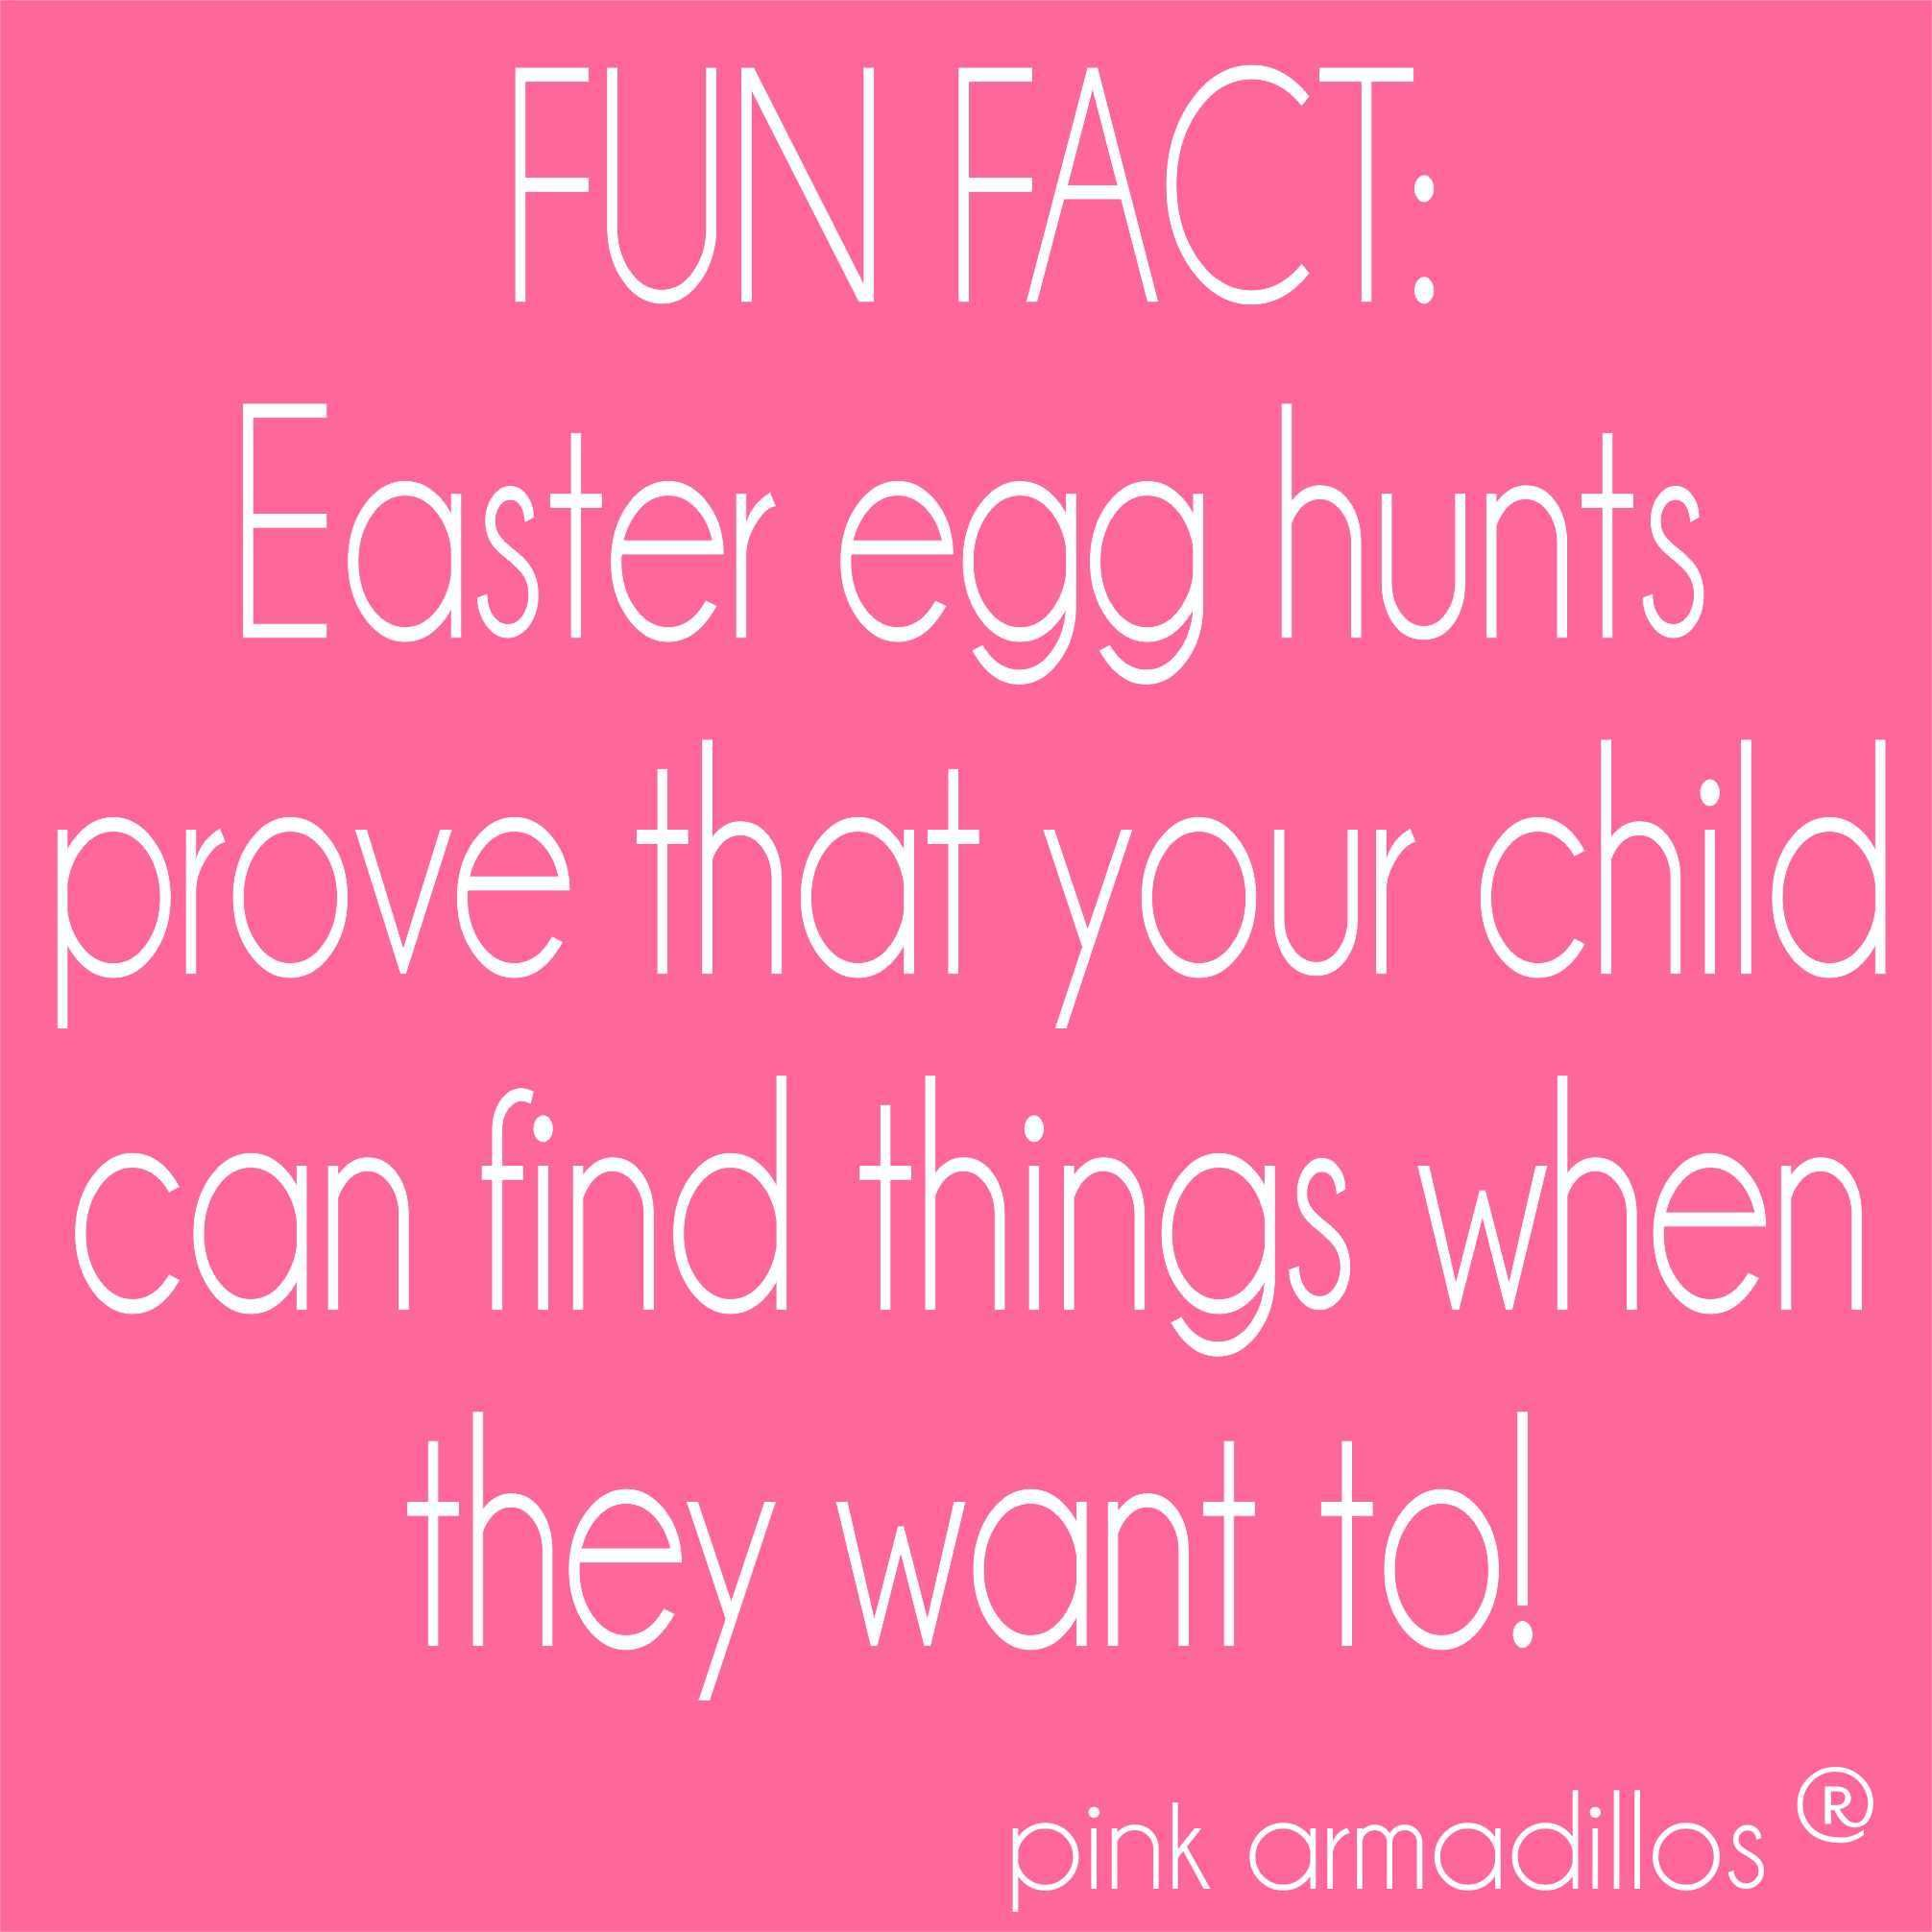 We Need An Easter Egg Hunt Everyday Funny Humor Easter Momlife Kids Pinkarmadillos Spreadingsouthe Parents Quotes Funny Happy Easter Funny Easter Humor